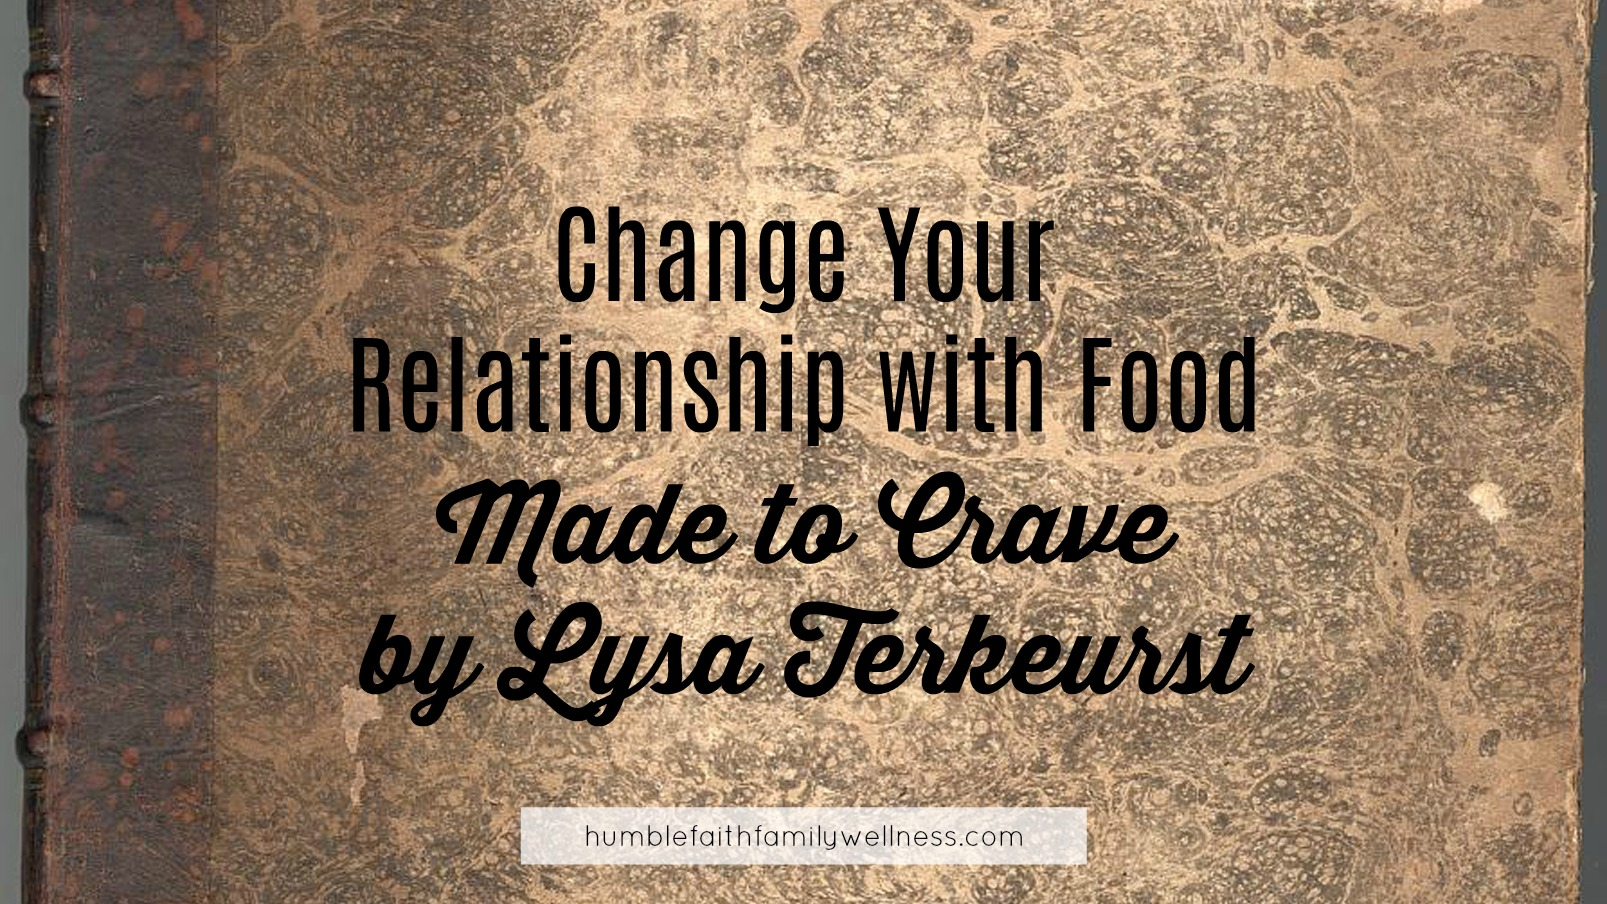 relationship with food, Made to Crave